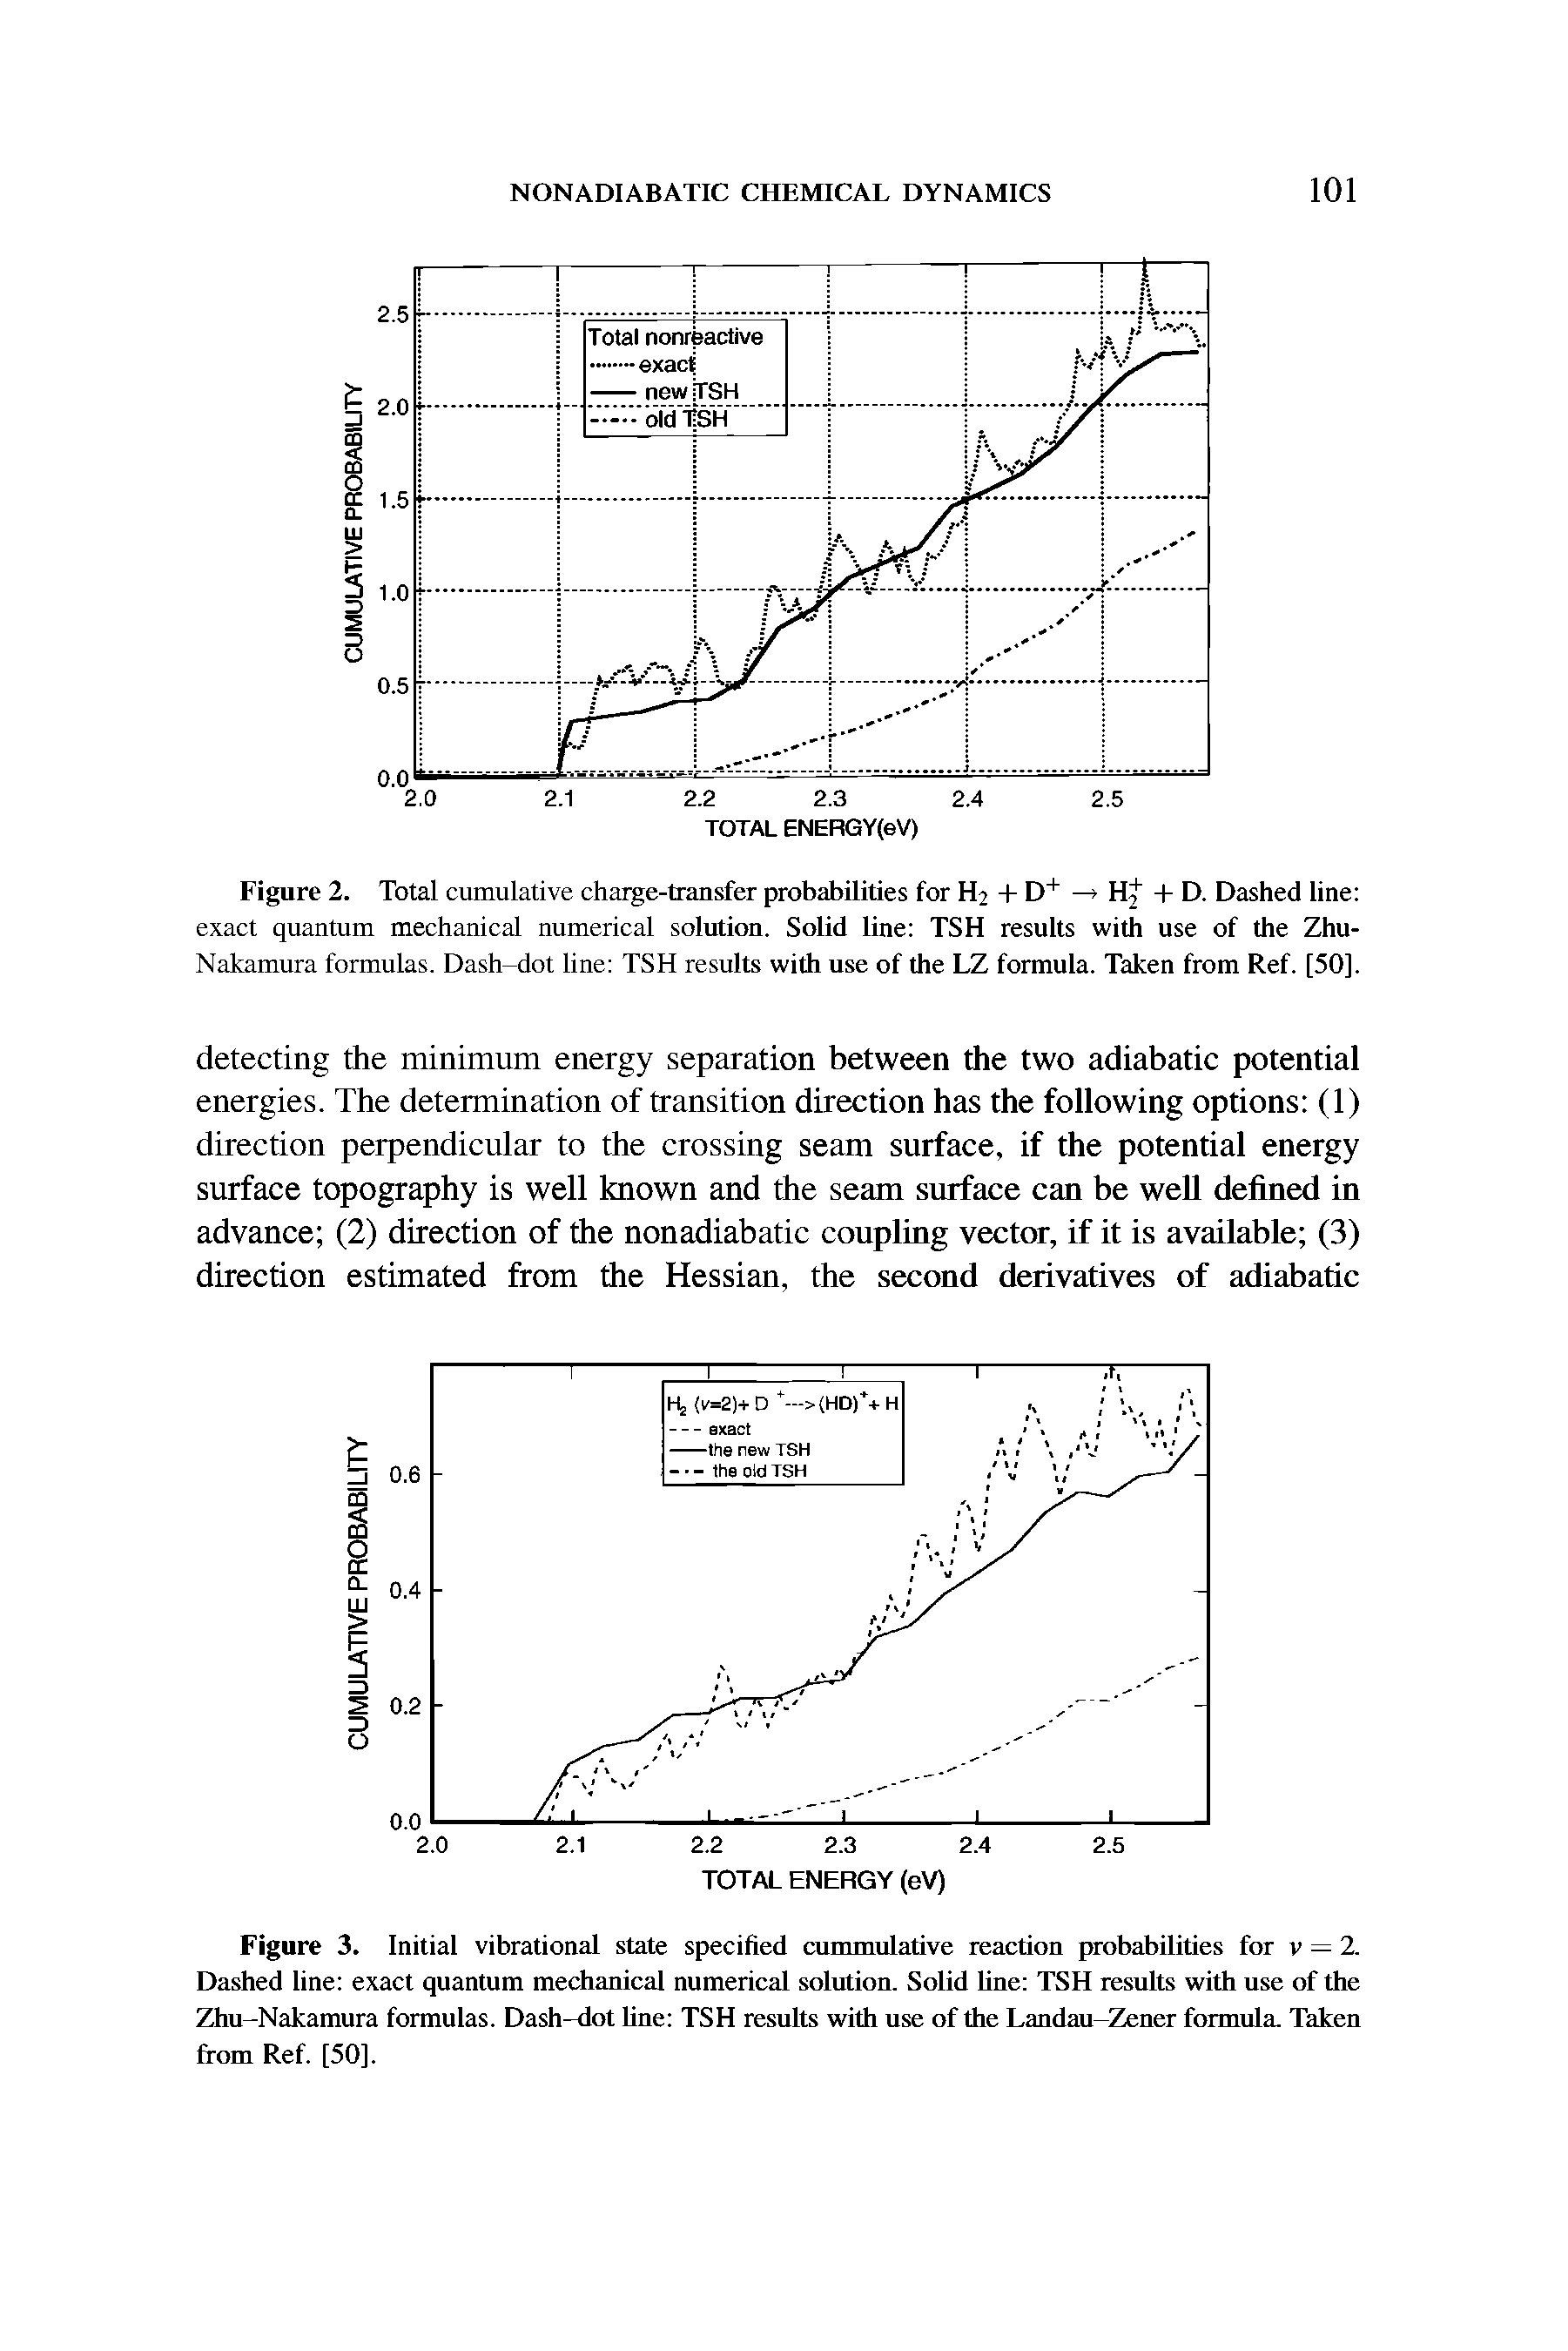 "Figure 2. Total cumulative <a href=""/info/probability_of_charge_transfer"">charge-transfer probabilities</a> for H2 + D"" "" — Hj + D. <a href=""/info/dashed_lines"">Dashed line</a> exact <a href=""/info/quantum_mechanics"">quantum mechanical</a> <a href=""/info/numerical_solution"">numerical solution</a>. <a href=""/info/solid_lines"">Solid line</a> TSH results with use of the Zhu-Nakamura formulas. Dash-dot line TSH results with use of the LZ formula. Taken from Ref. [50]."